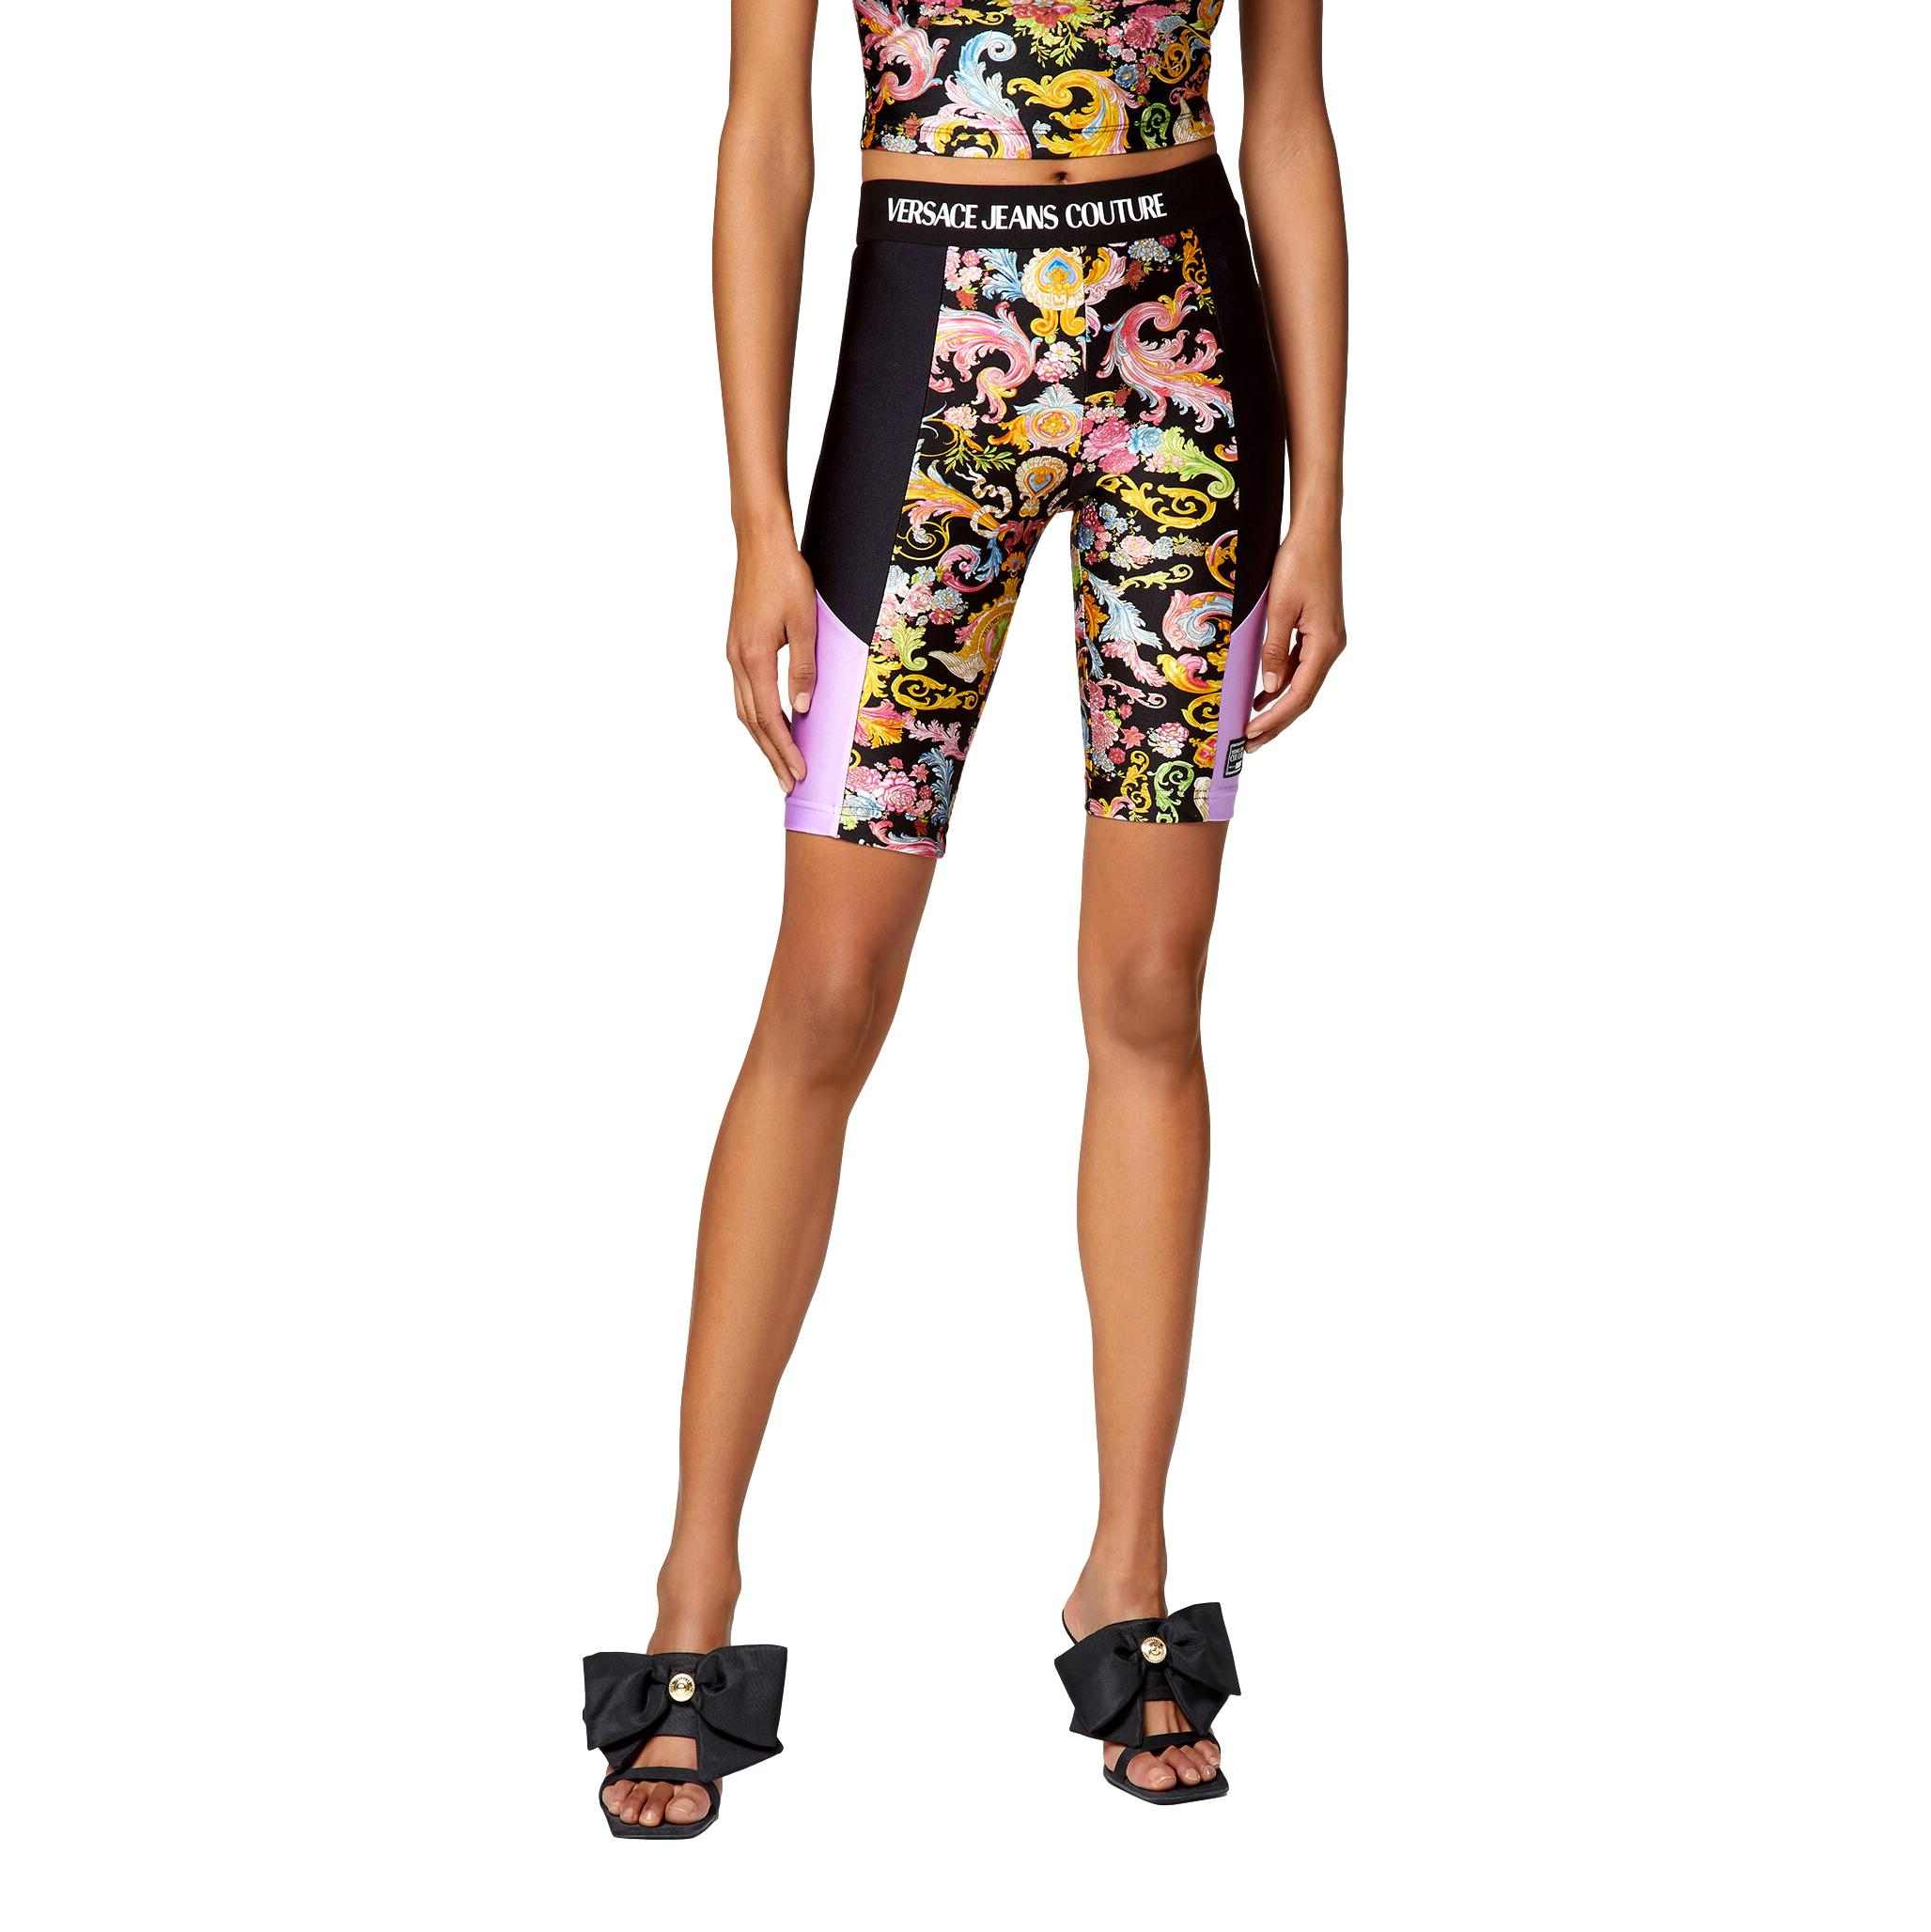 colour-block cycling shorts VERSACE JEANS COUTURE |  | D5HWA162 S0096899